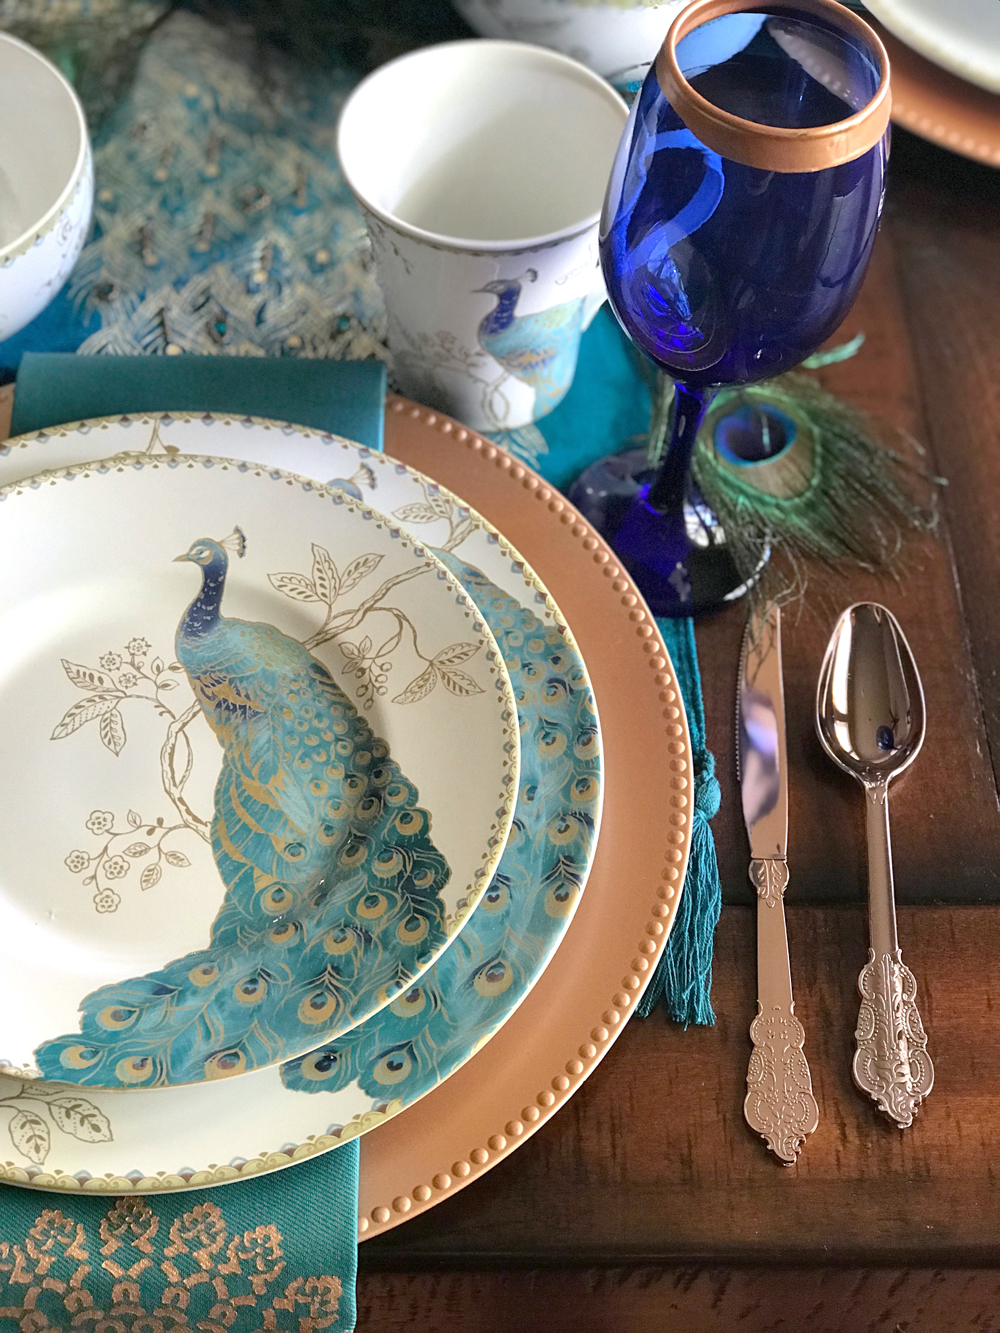 Copper, Teal and Cobalt Colored Peacock Table Setting for a peacock wedding theme (or holiday tablescape) / peacock dinnerware - the perfect choice for a wedding registry / diy gold rimmed wine glasses / as seen on Brenda's Wedding Blog www.brendasweddingblog.com / design and styling by Bri of Halfpint Design